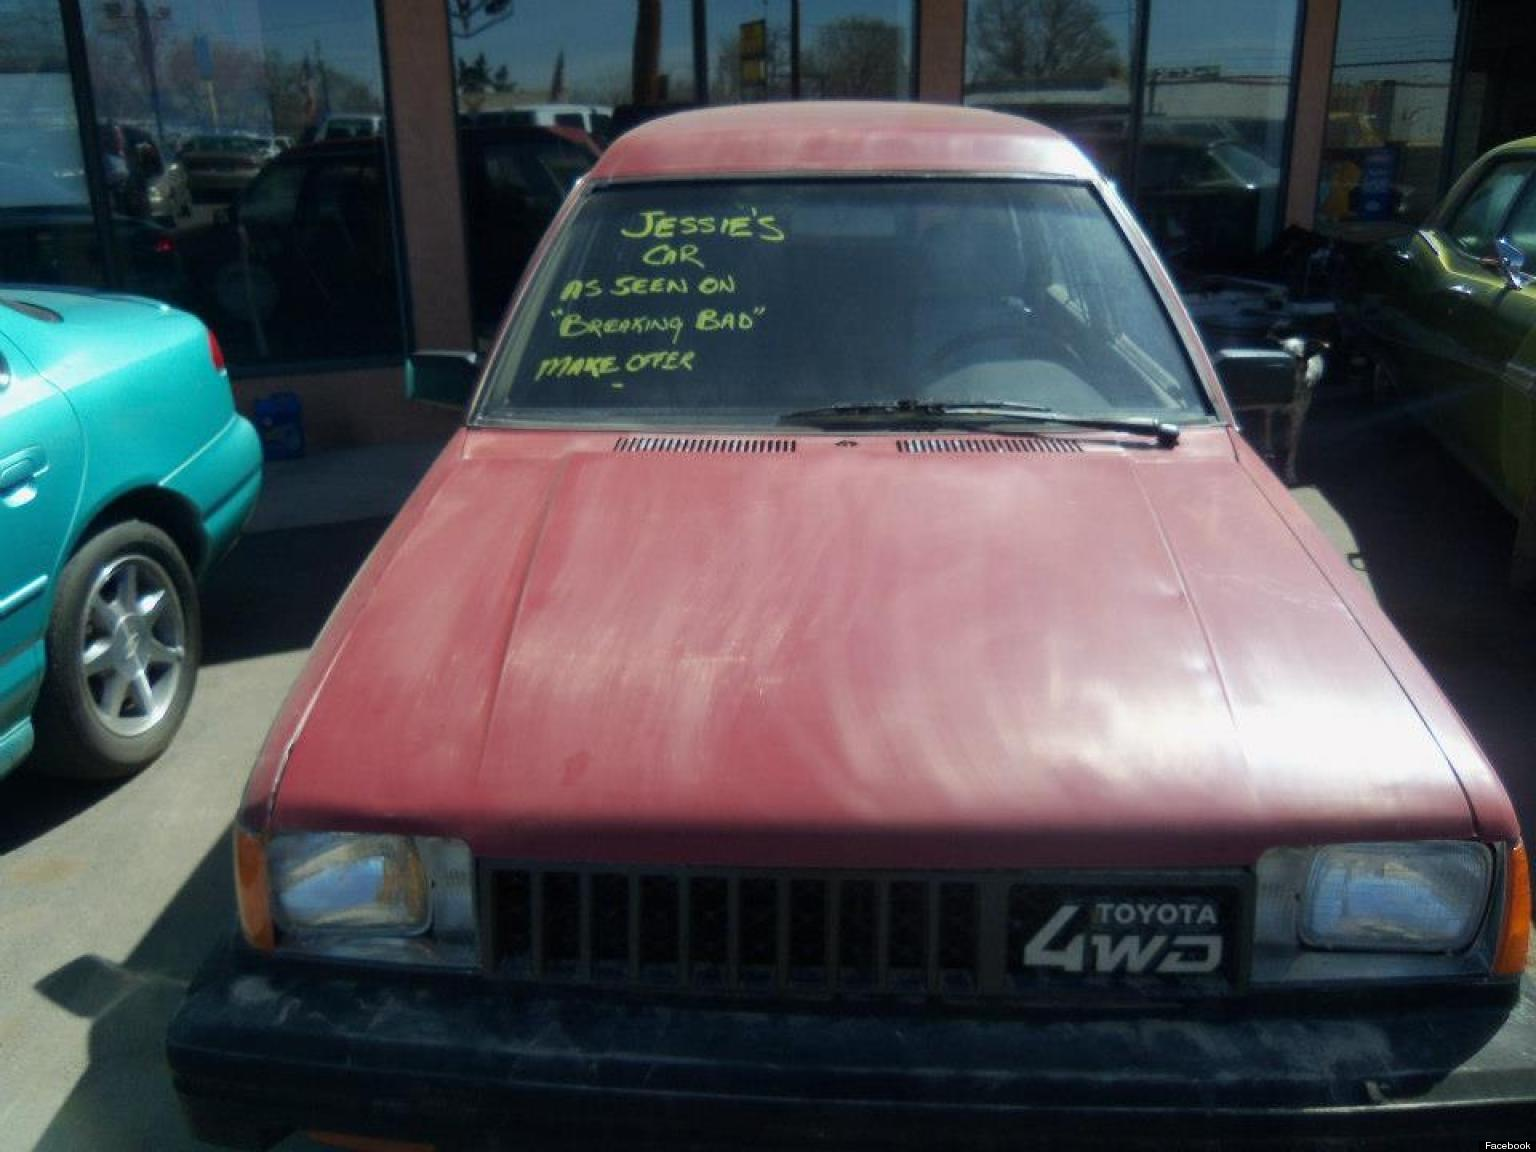 Breaking A Car Lease: Jesse's Car From 'Breaking Bad' Could Be Yours